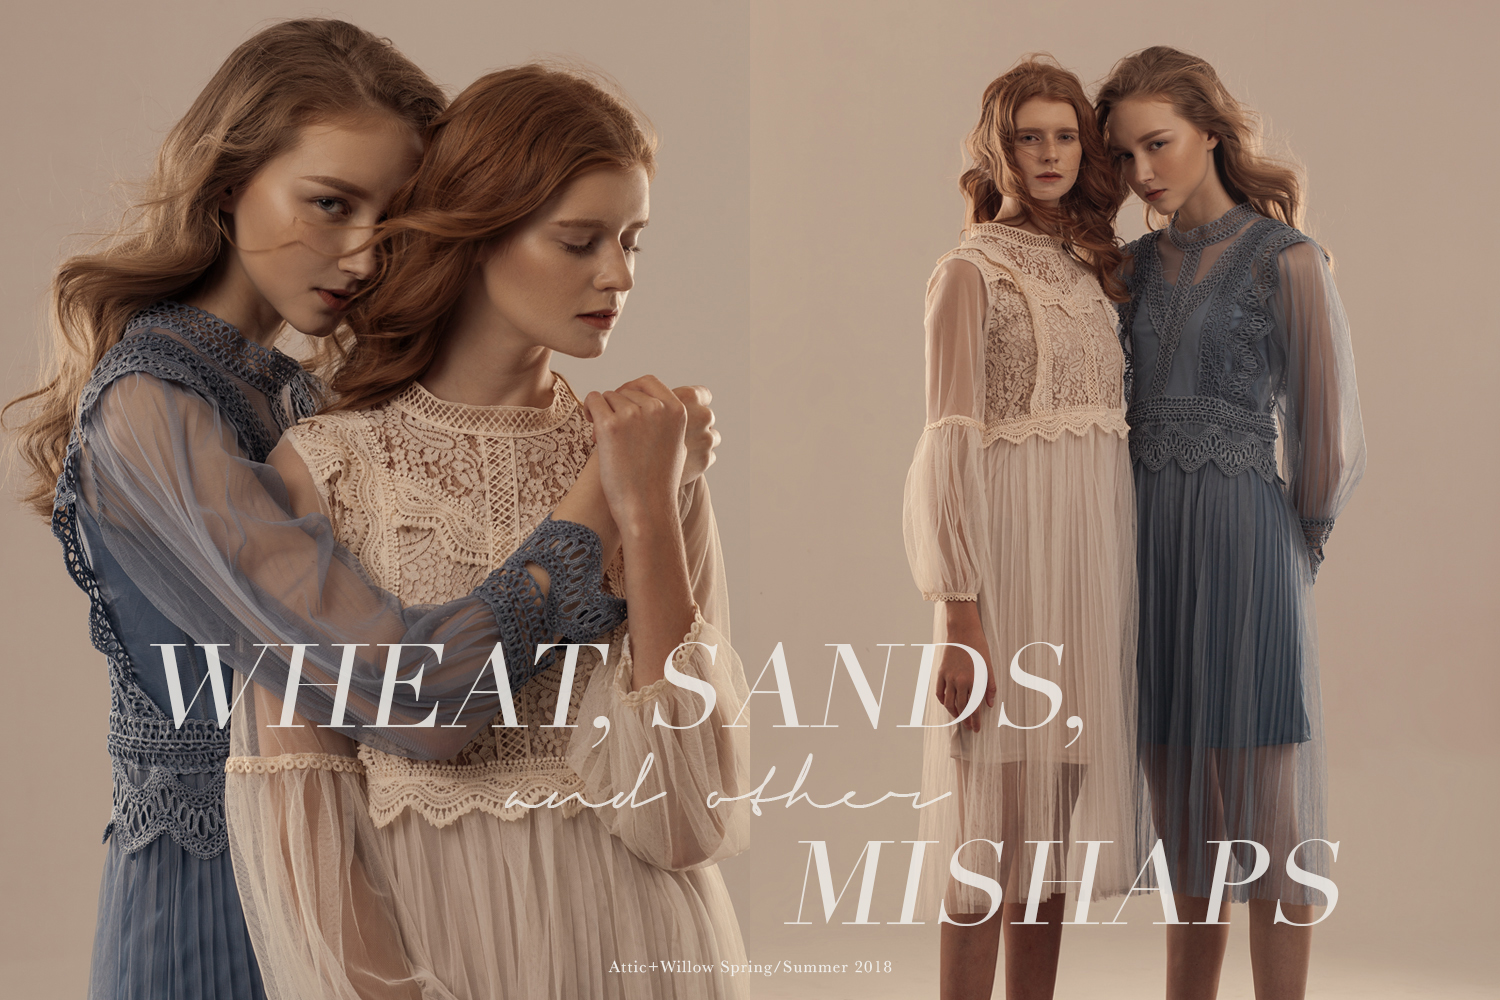 Wheat, Sands, and Other Mishaps - Summer 2018